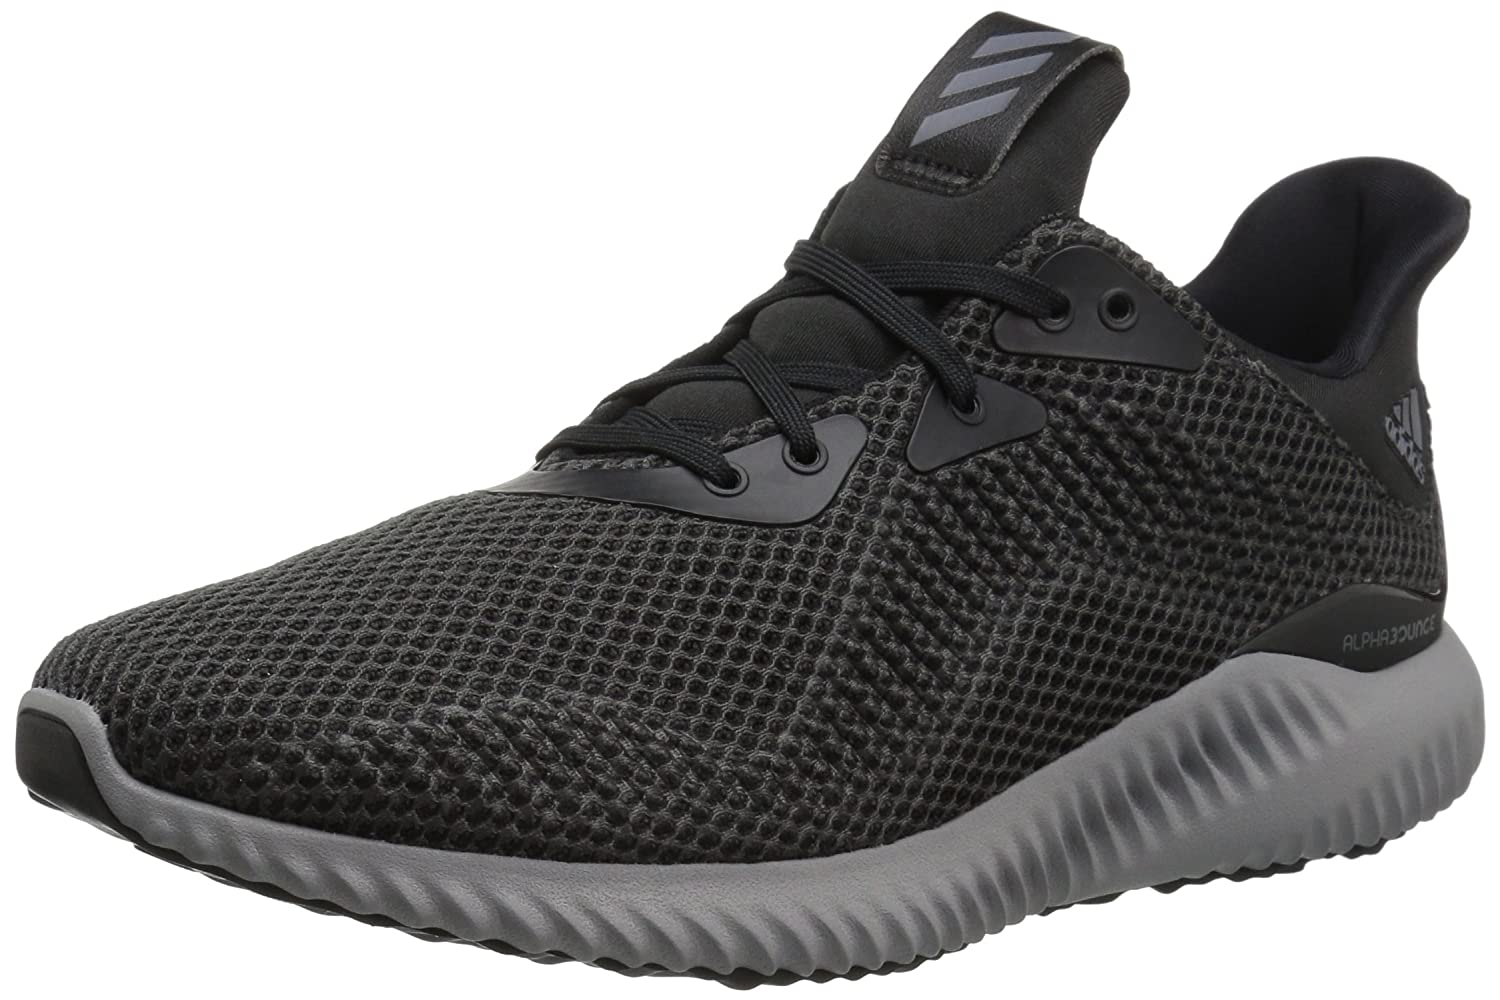 adidas Performance Women's Alphabounce W Running Shoe B01MXPM91D 10.5 B(M) US|Black/Utility Black/Grey Two